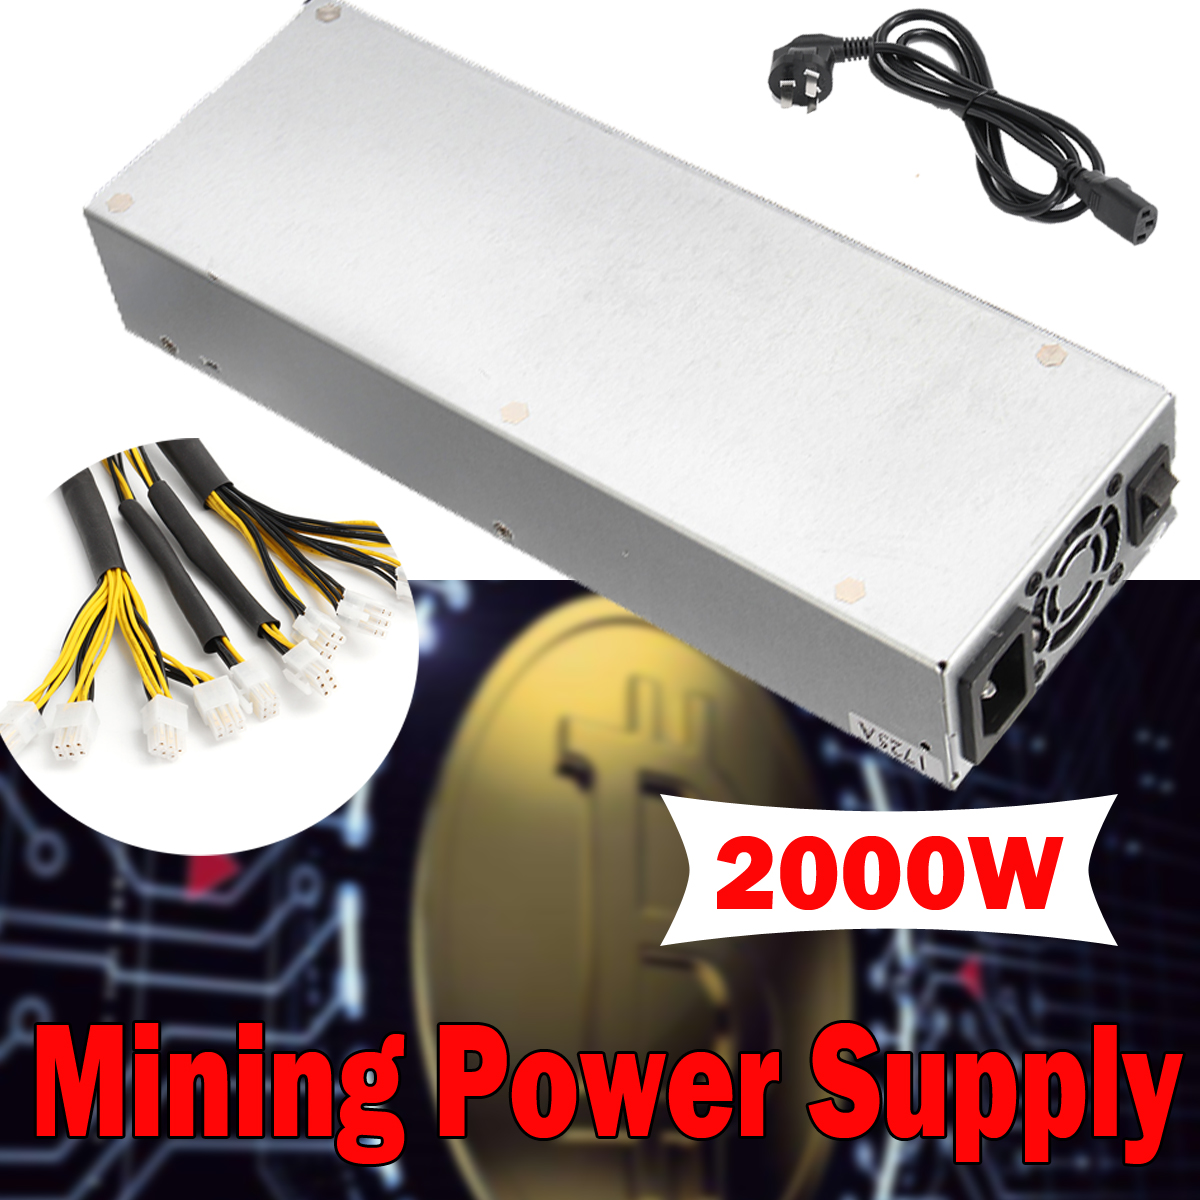 92.5% Efficiency 2000W Mining Power Supply For Eth Rig Ethereum Bitcoin Miner Mining Machine S7 S9 200-240V 90 2000w over 90% efficiency atx12v v2 31 eth coin mining miner power supply active pfc power supply for 8 graphics cards bitcoin